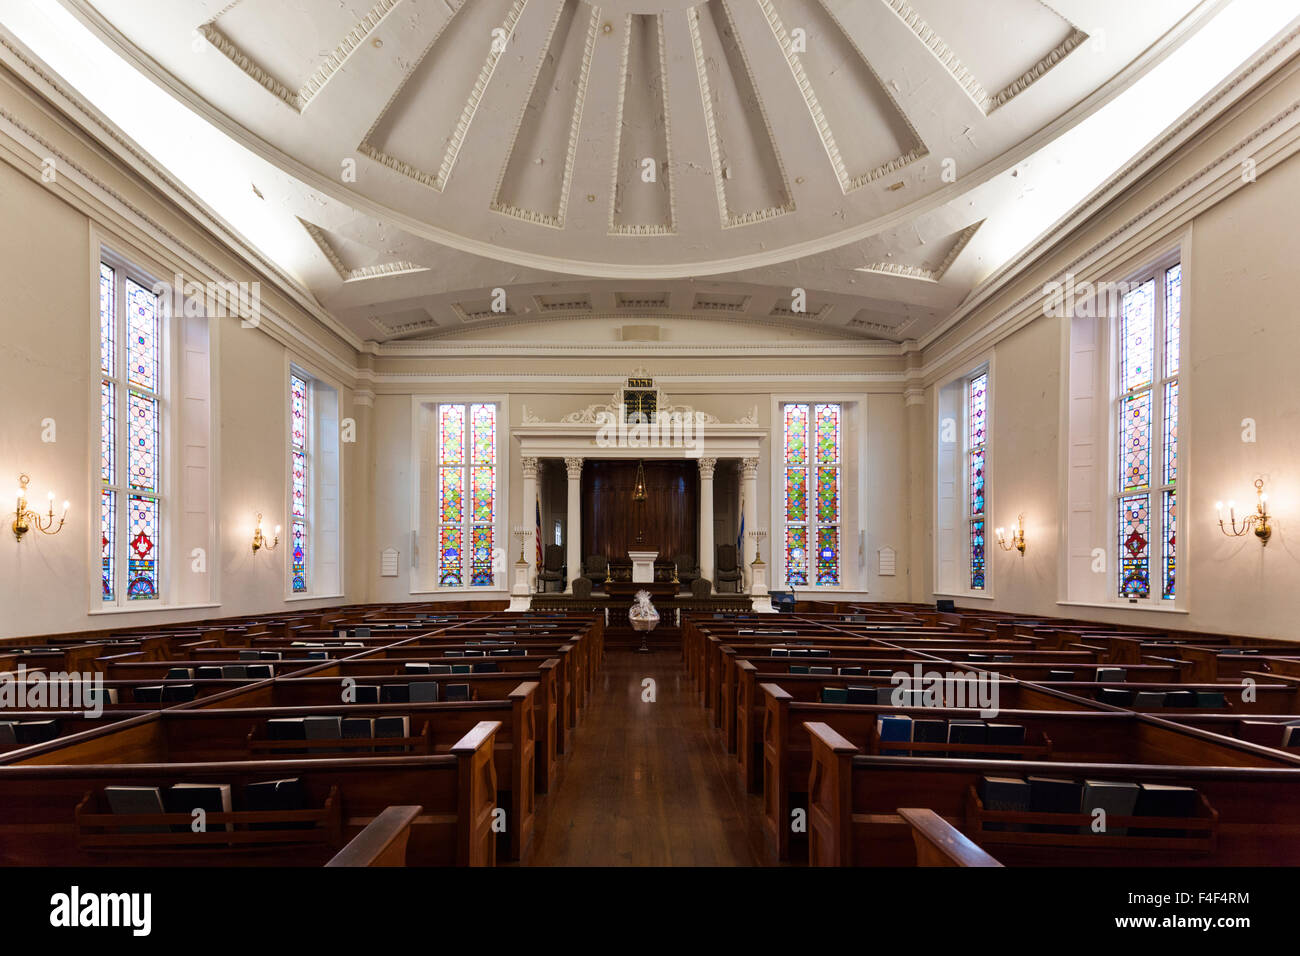 South Carolina, Charleston, Kahal Kadosh Beth Elohim Synagogue, oldest continuously used synagogue in the interior - Stock Image